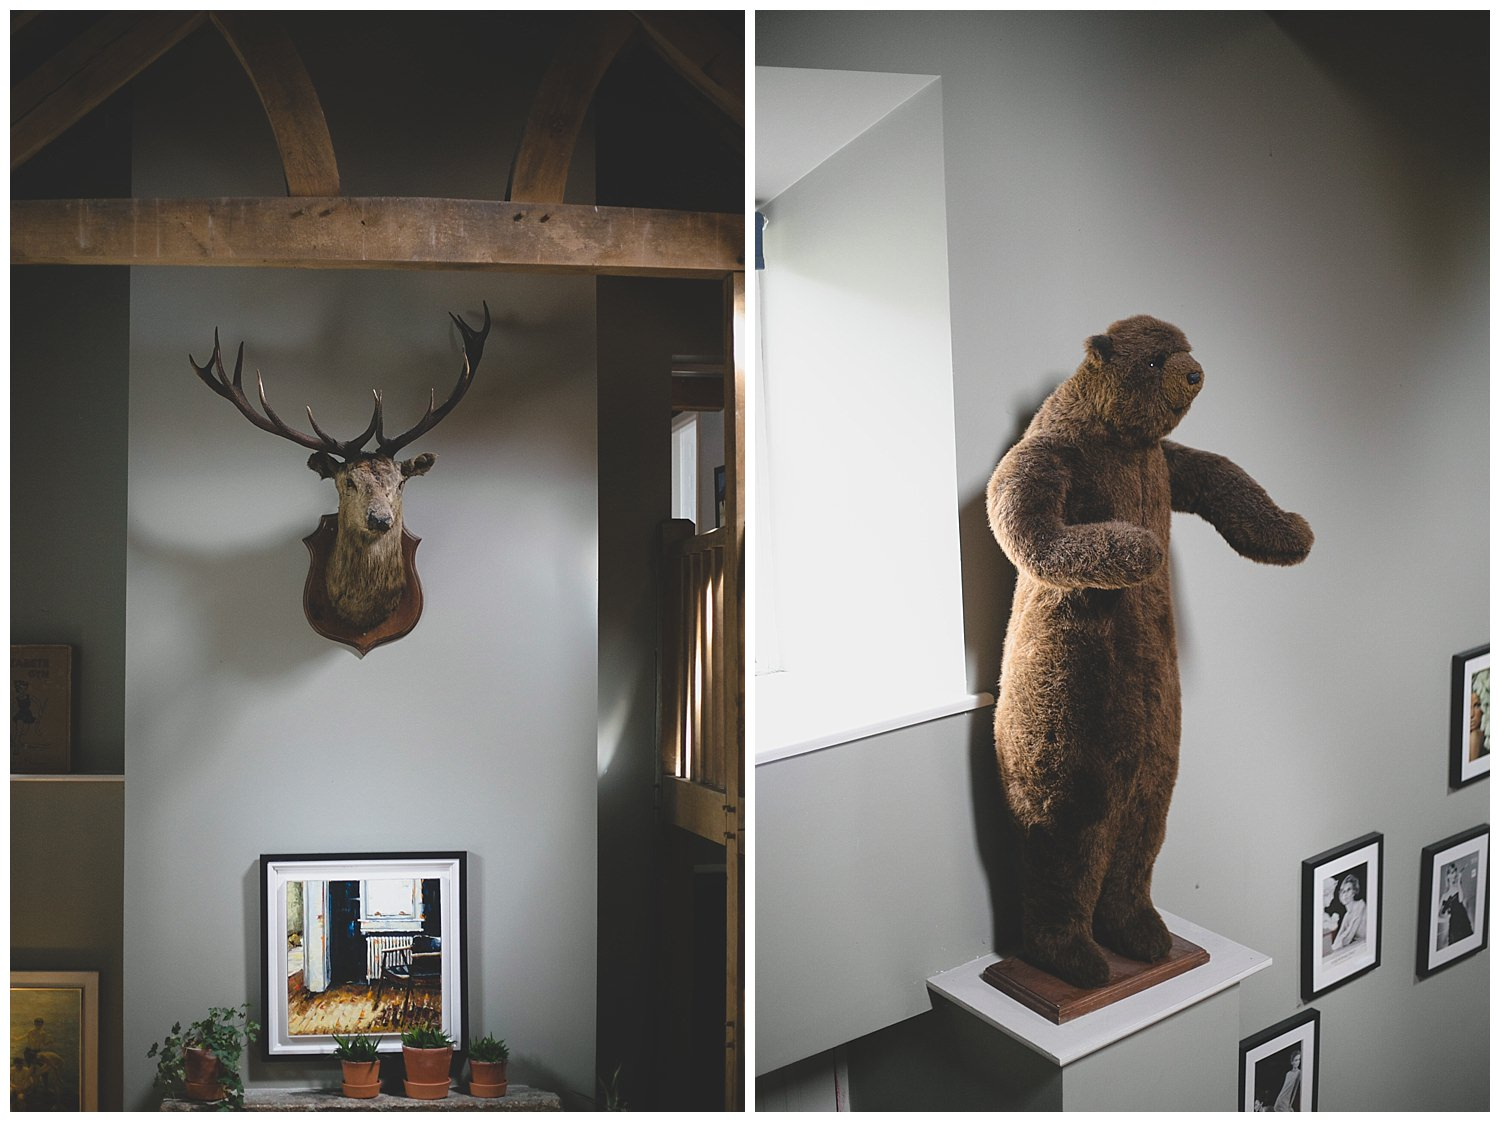 Deer and fake taxidermy bear at Mount Druid